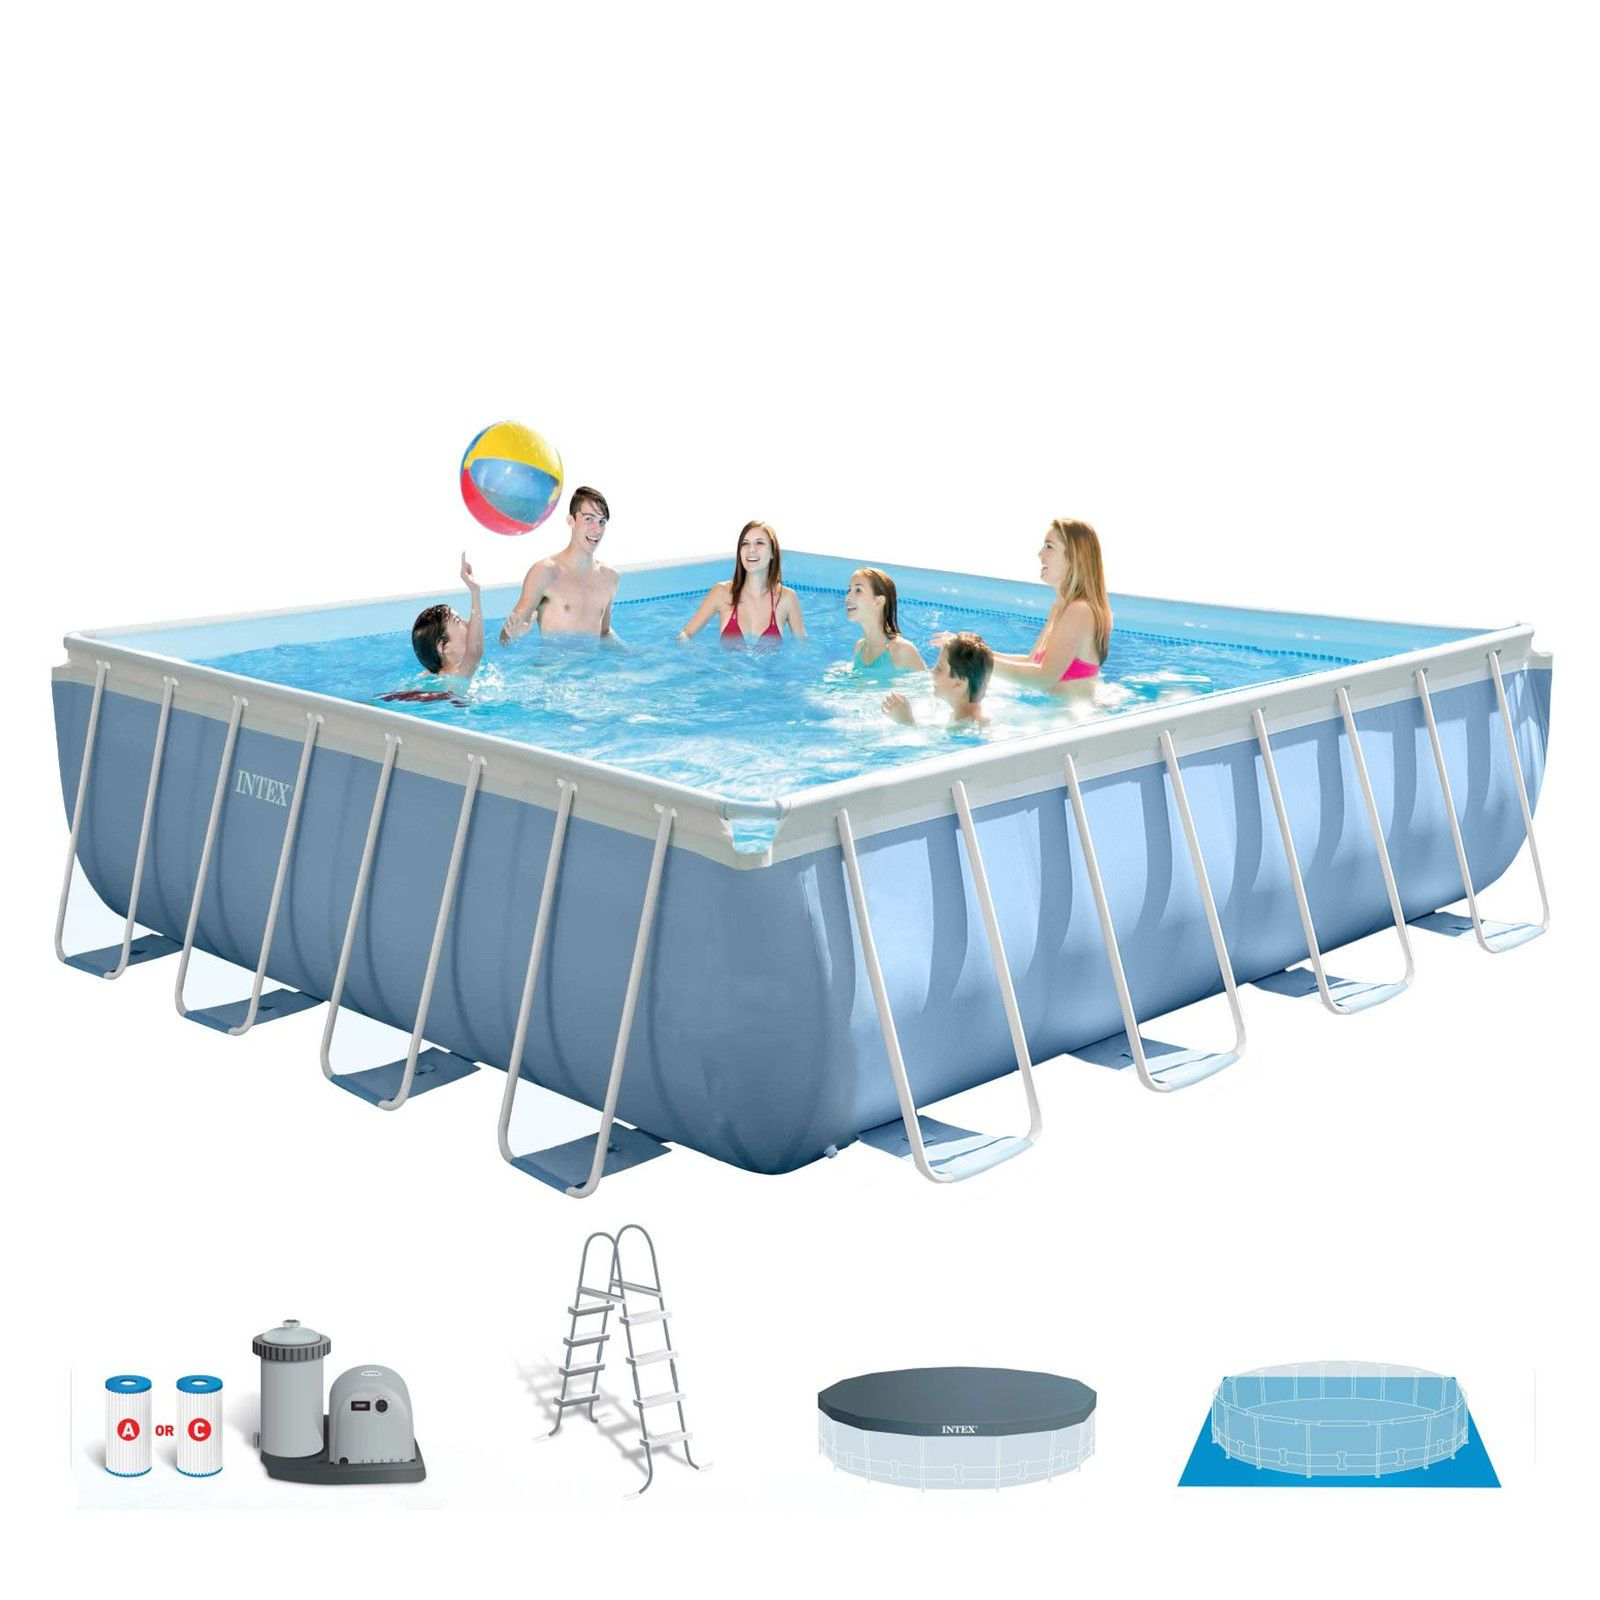 Intex 14 X 42 Prism Xl Frame Square Above Ground Pool Set With Filter Pump Square Above Ground Pool In Ground Pools Above Ground Swimming Pools